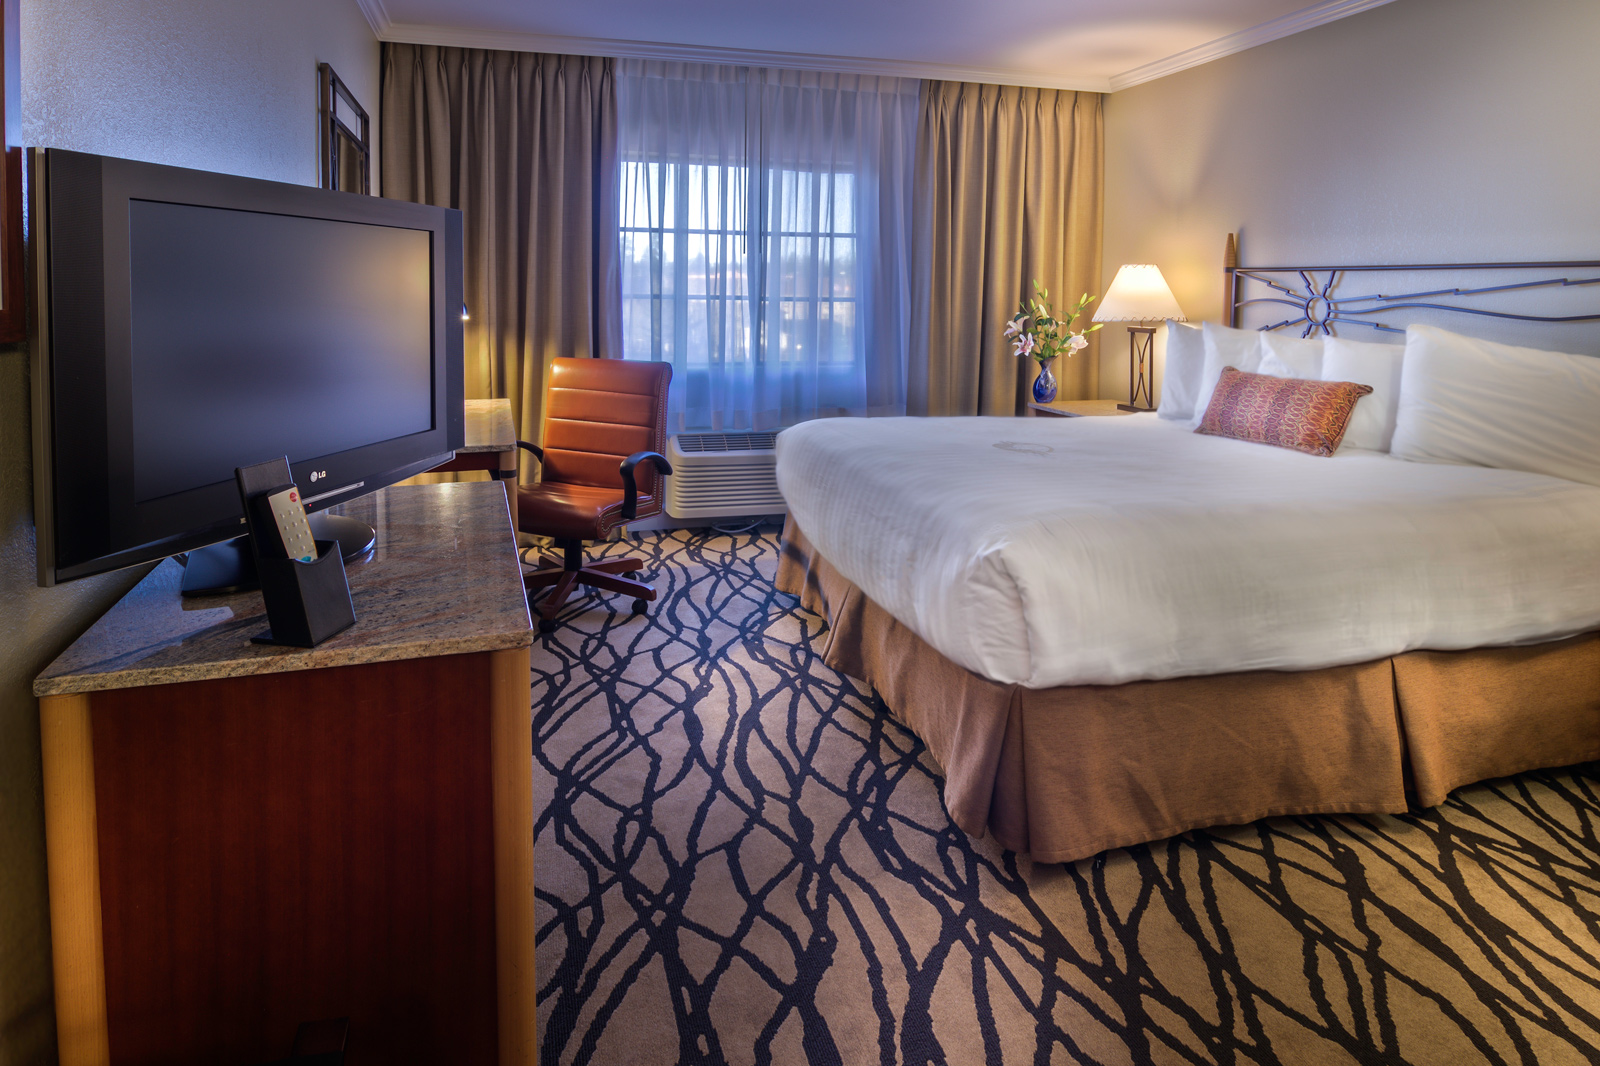 Photos Of The Grand Hotels Amenities Restaurant And Guest Rooms